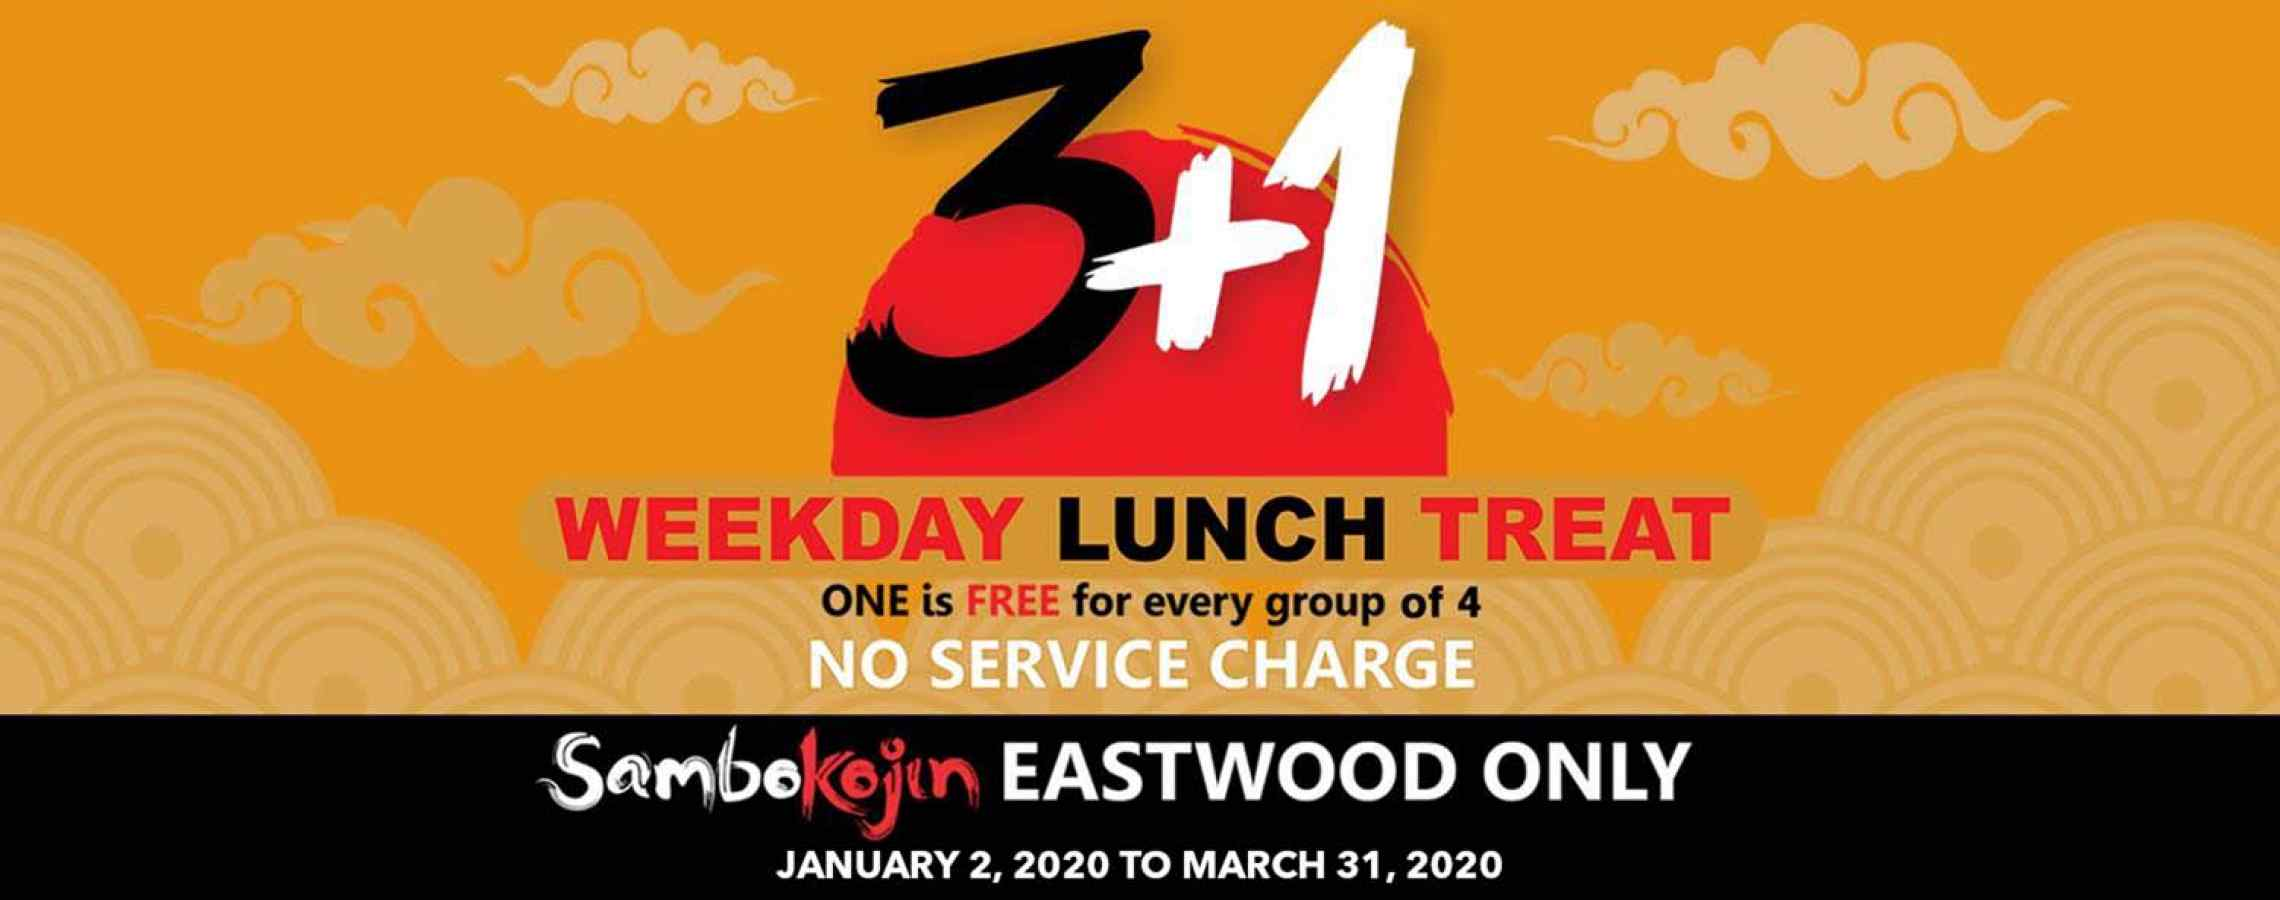 3+1 WEEKDAY LUNCH TREAT